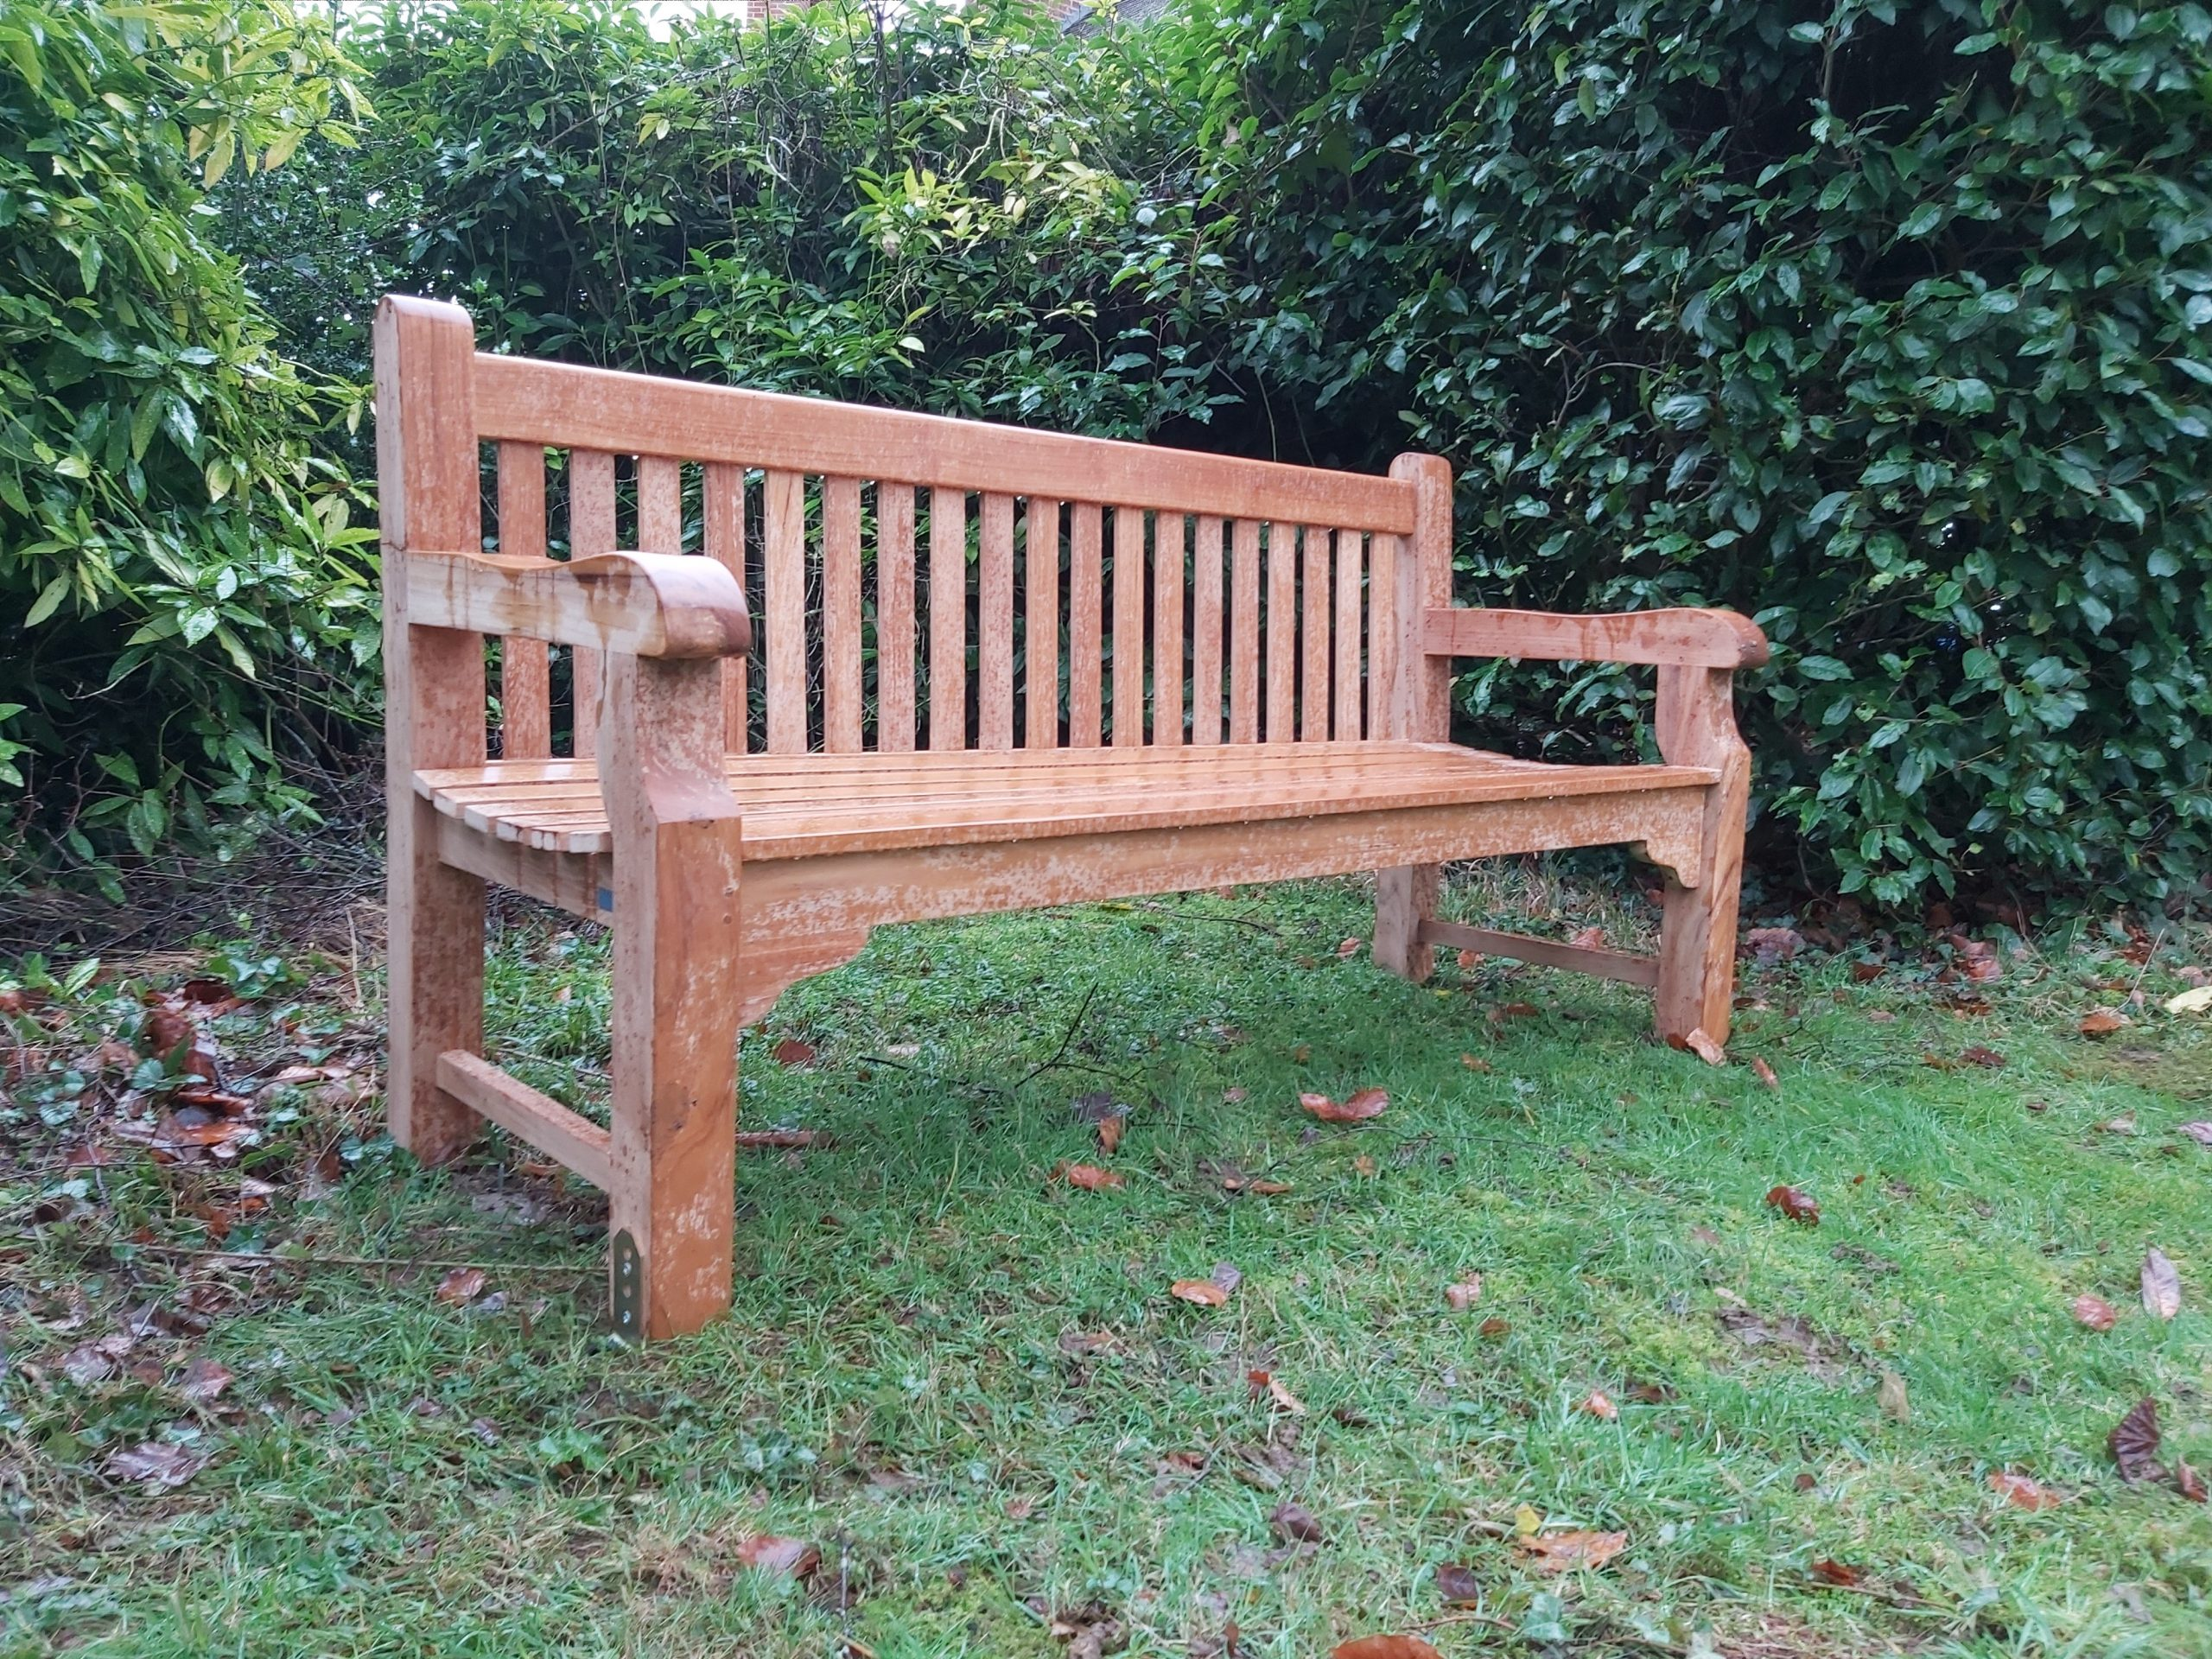 Photo of bench used for bench plaques